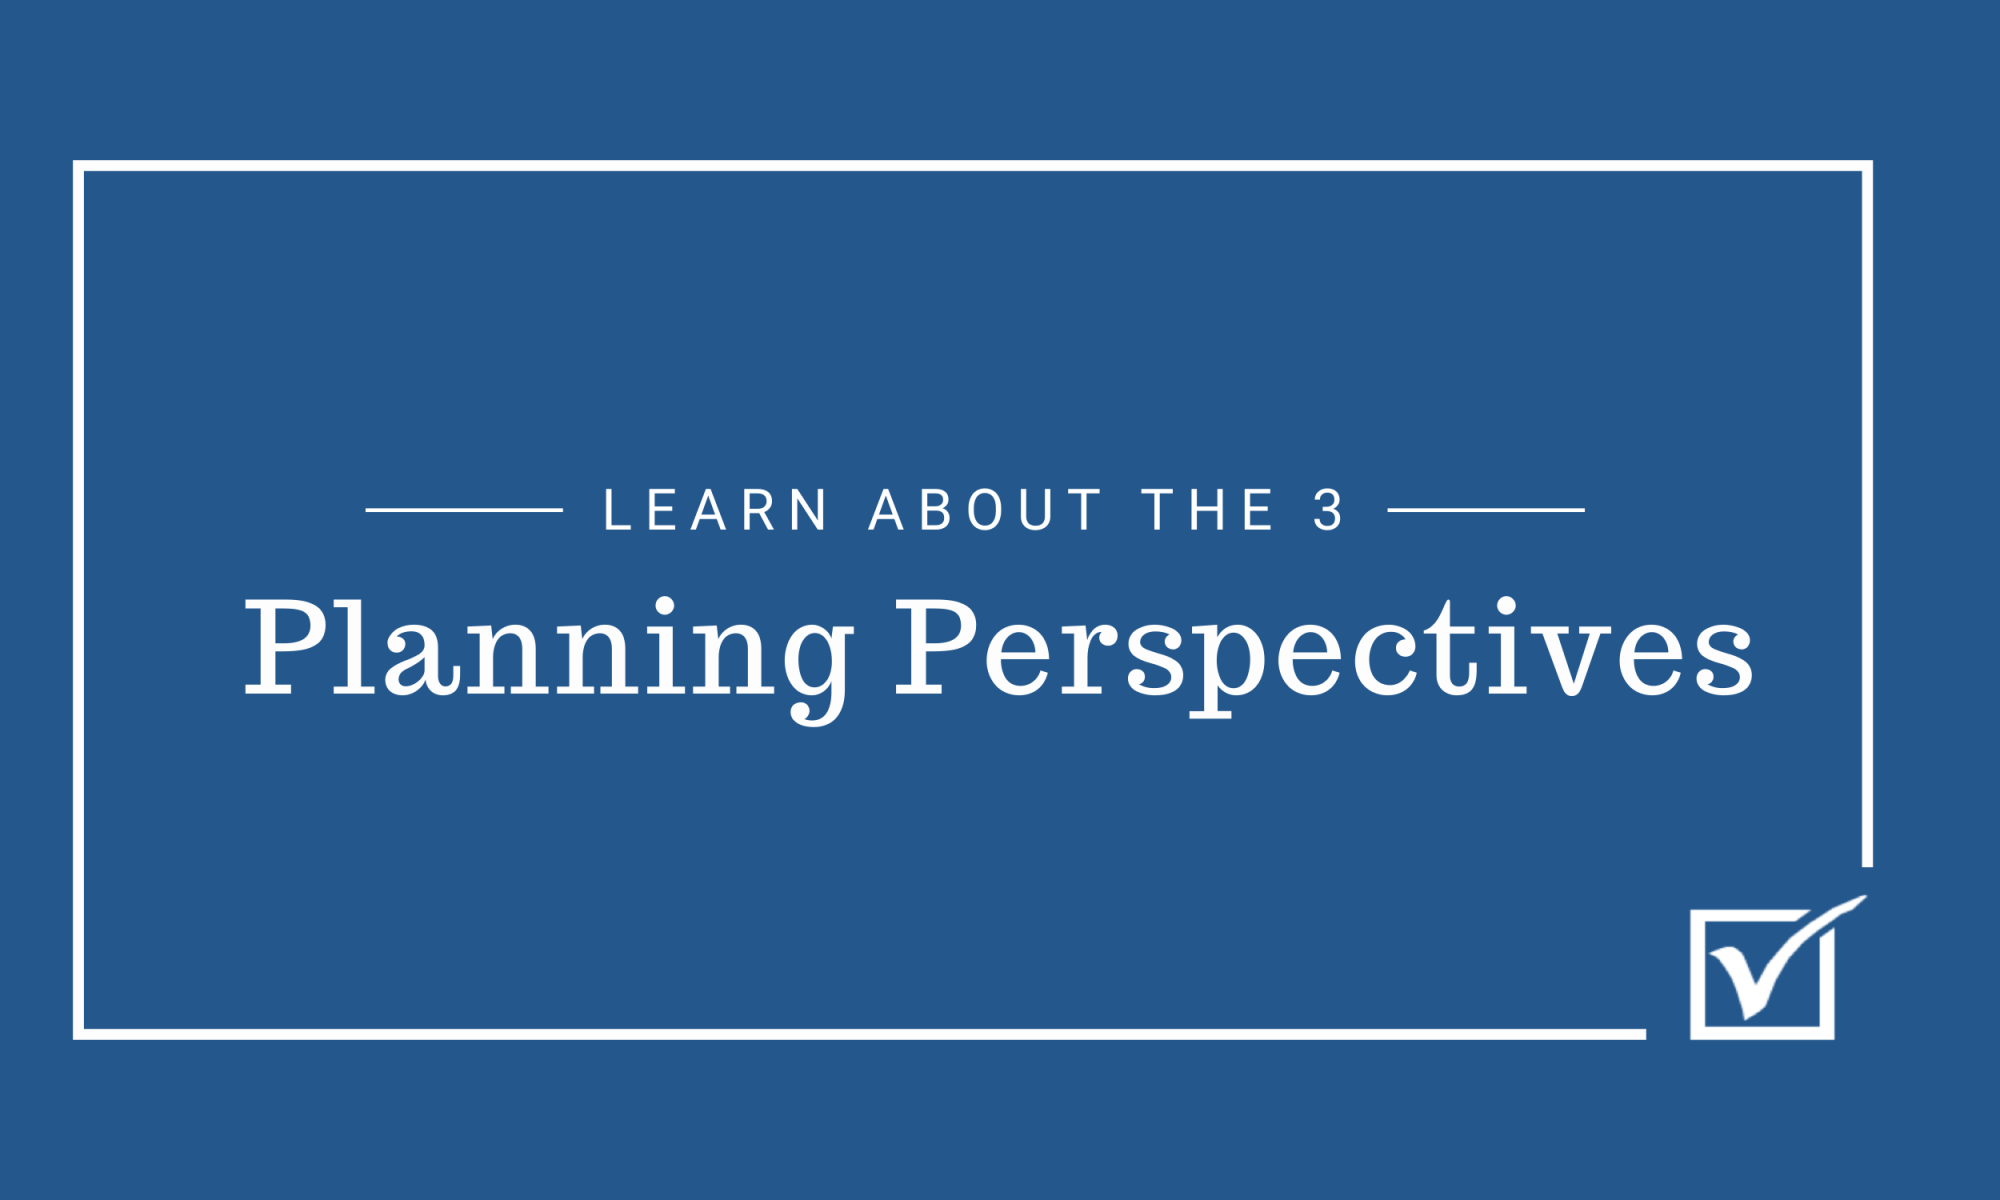 Learn about the 3 Planning Perspectives